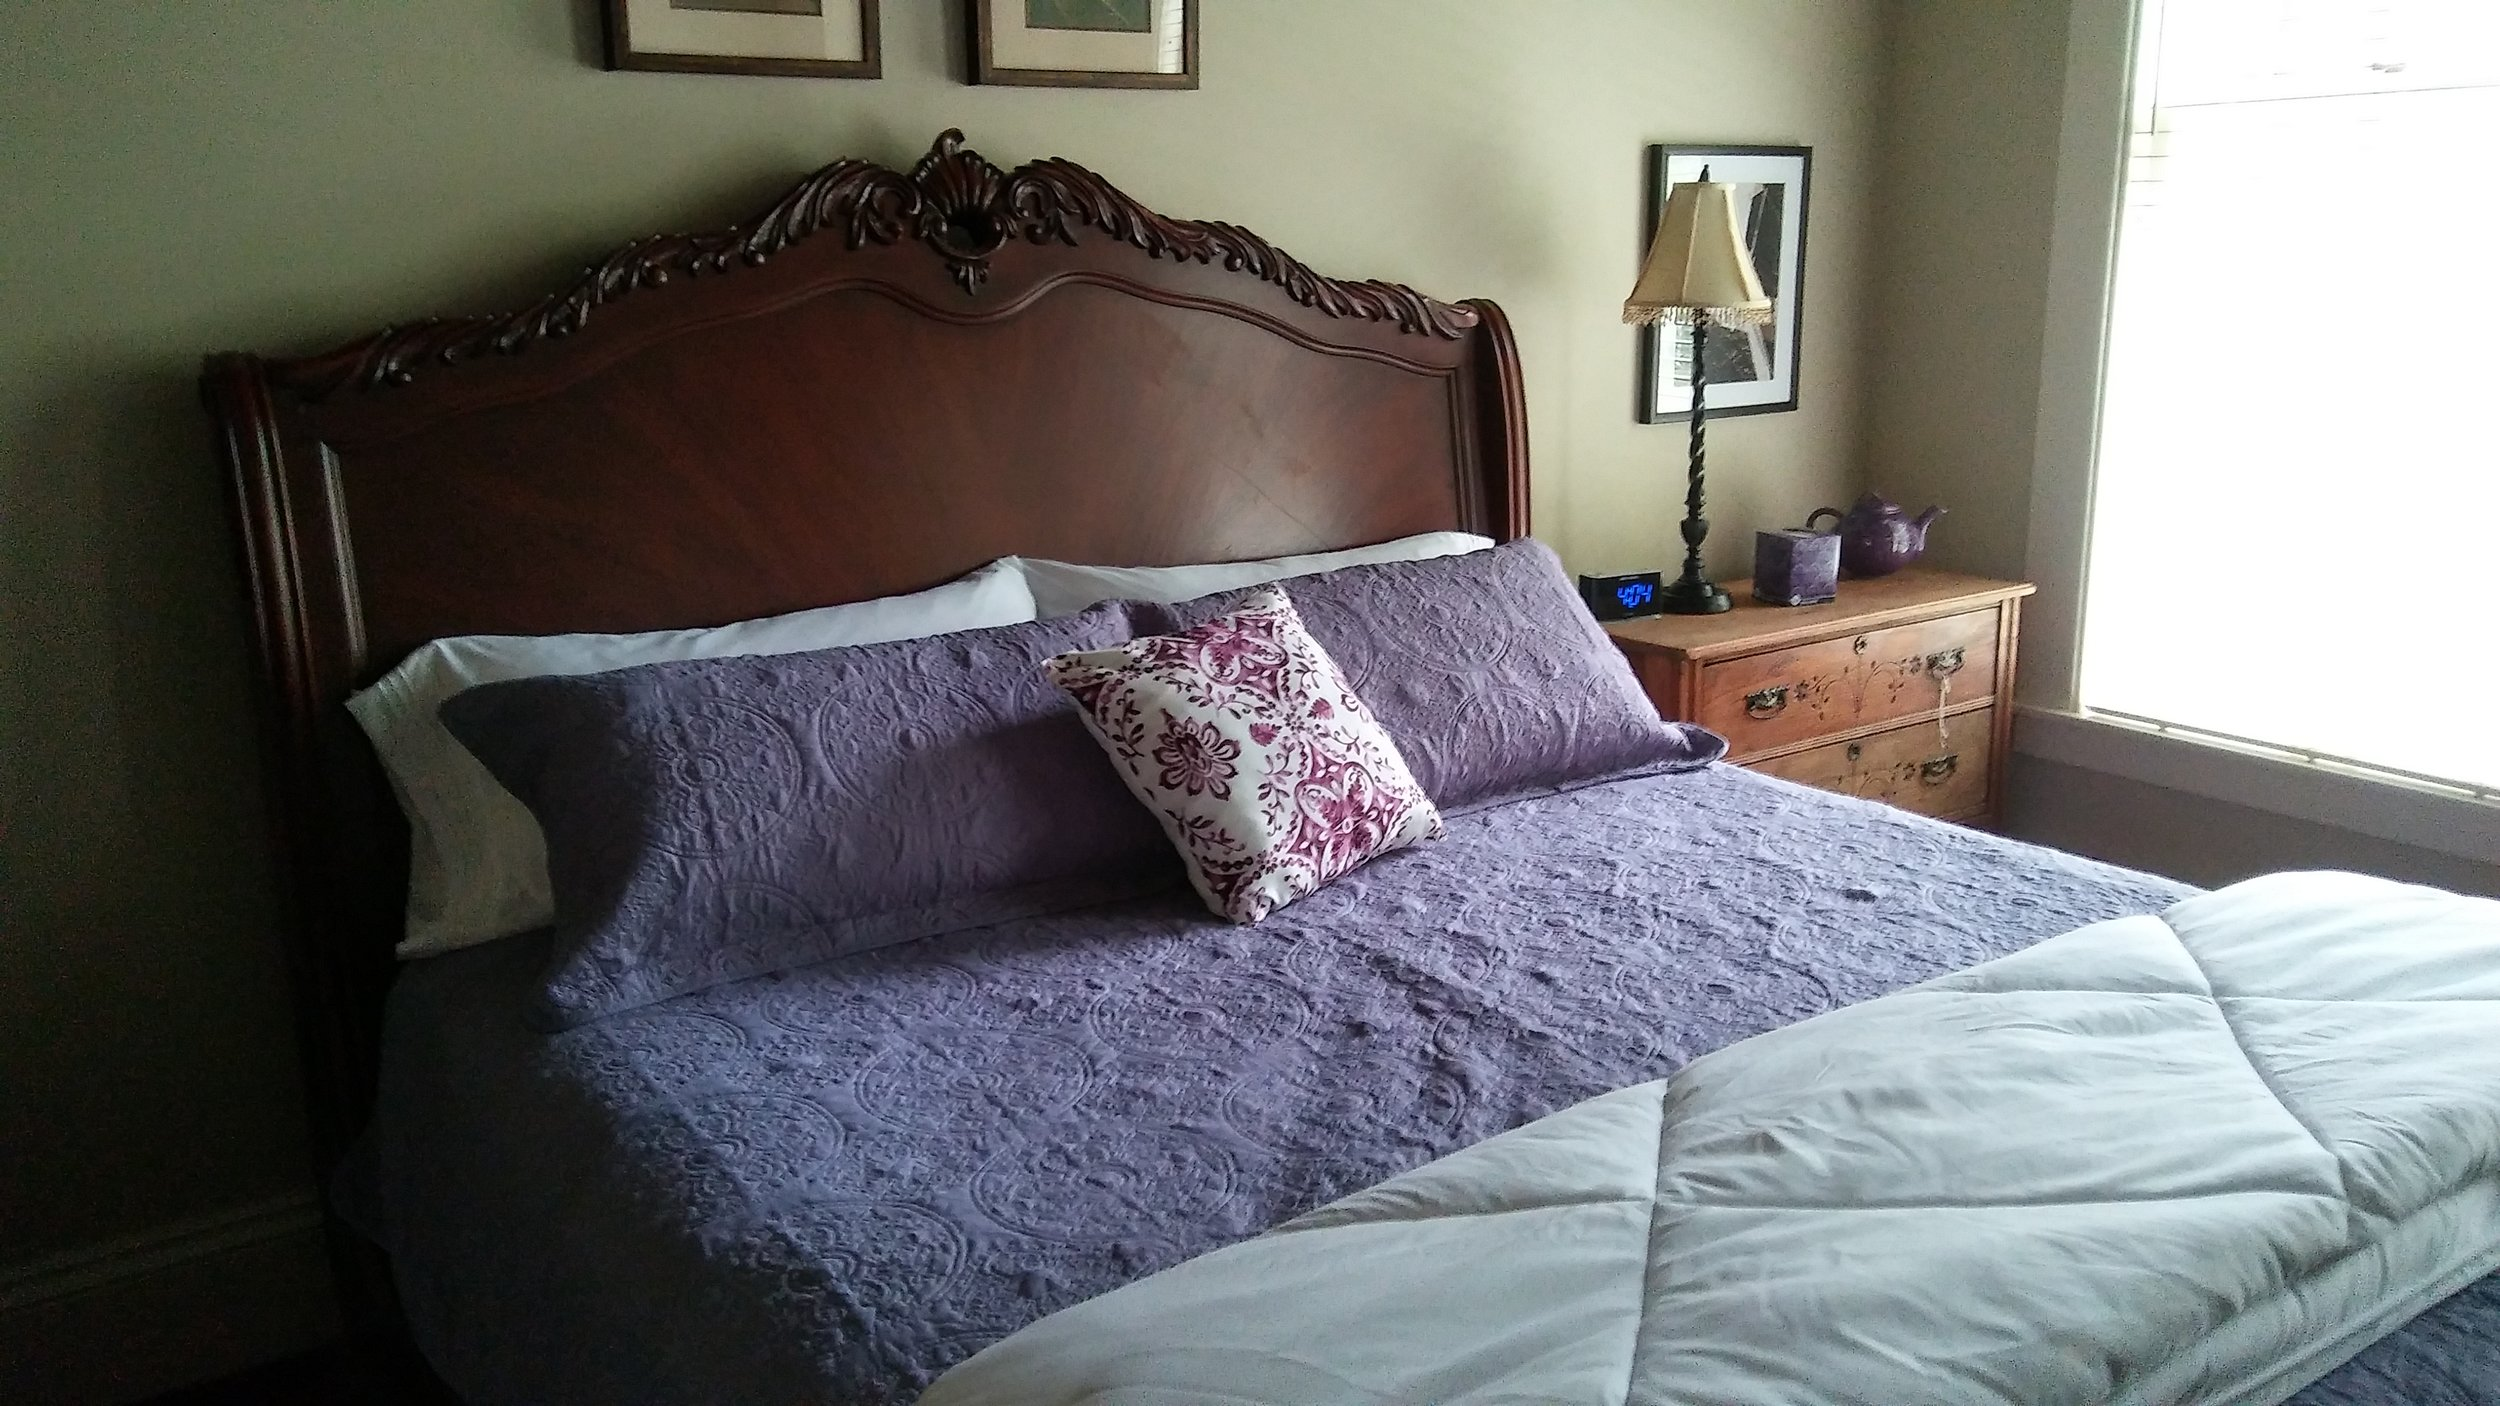 the purple viking - King Suite: $169/nightEnjoy this first-floor suite with easy access to all the inn has to offer, including the lawn and relaxing wrap around porch. The ornate king-sized mahogany sleigh bed is the focal point of this large room. There is a reading nook with a cozy love seat perfect for that quick catnap before heading out for a quiet dinner. The private attached bath offers a separate shower as well as a large jetted tub.